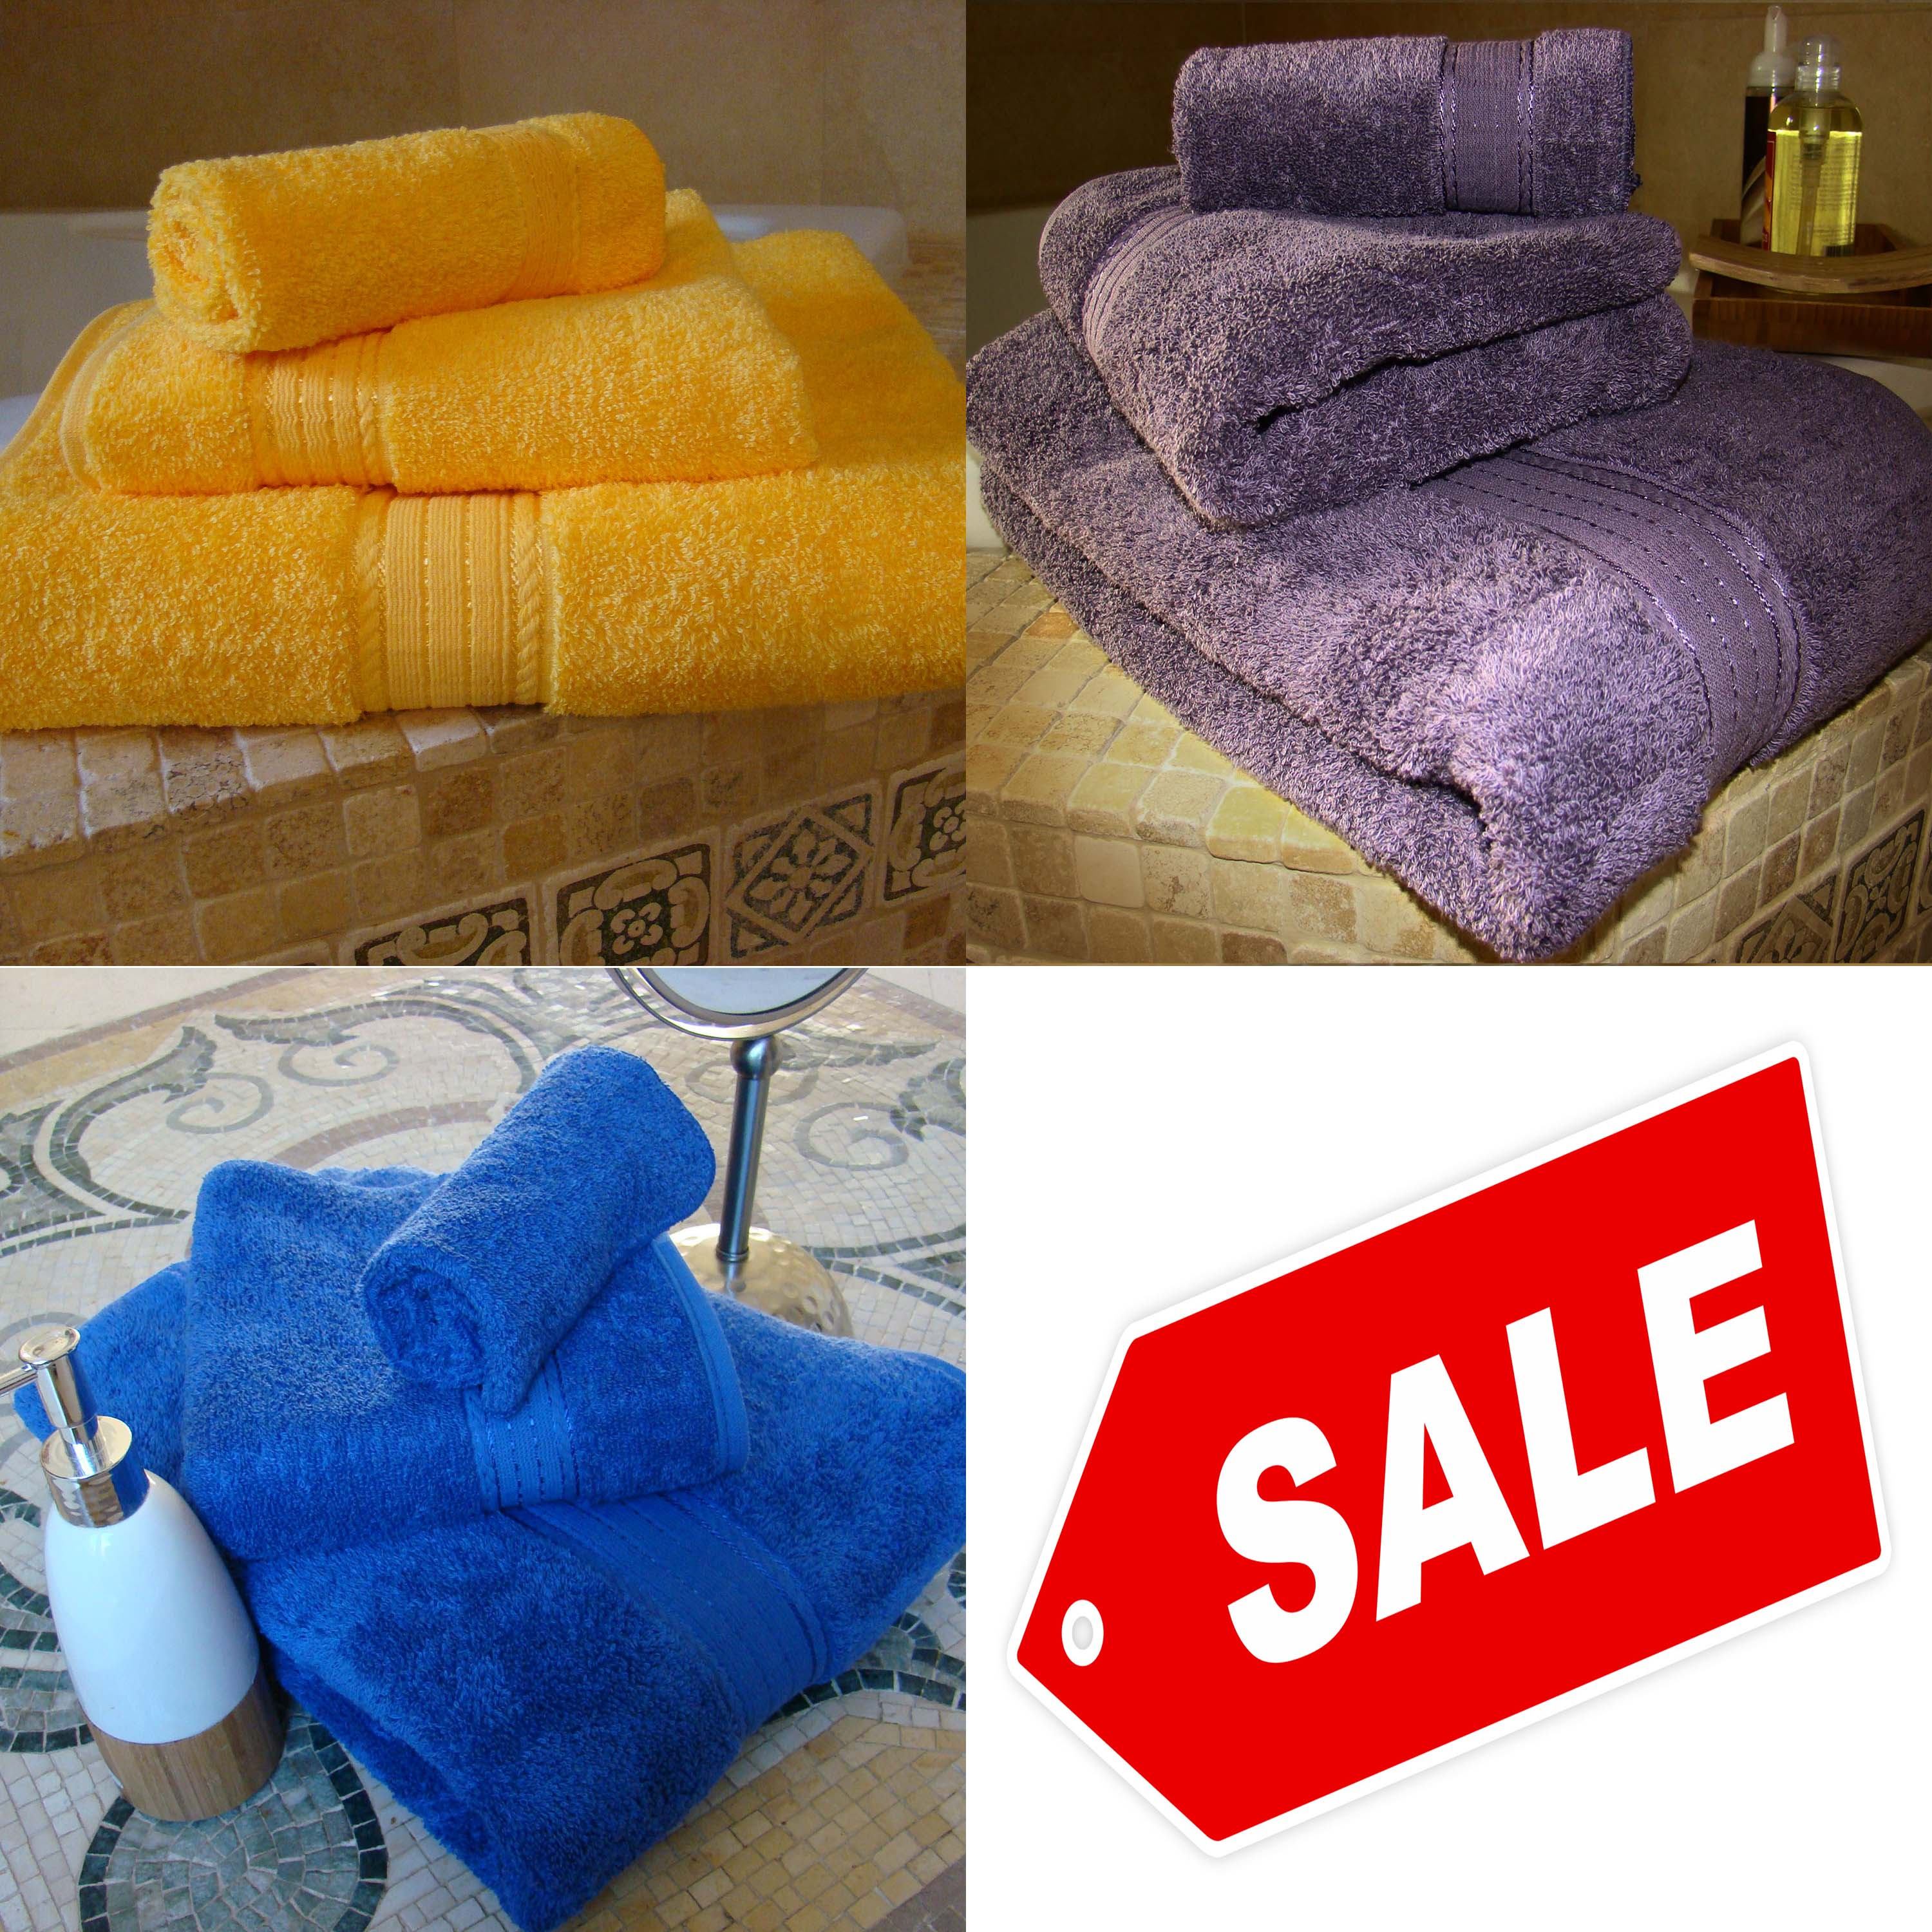 SPECIAL SALE ! Crown Jewel Luxurious Bath Set. 3 Colors available.